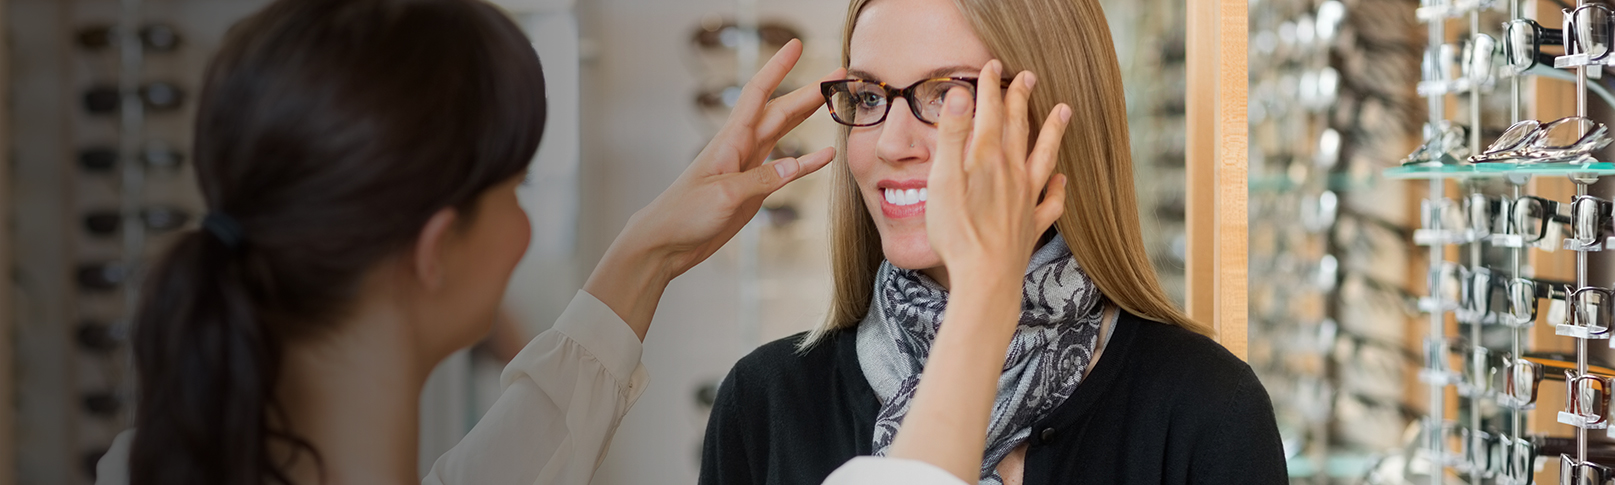 Optometrist helping a lady try on glasses